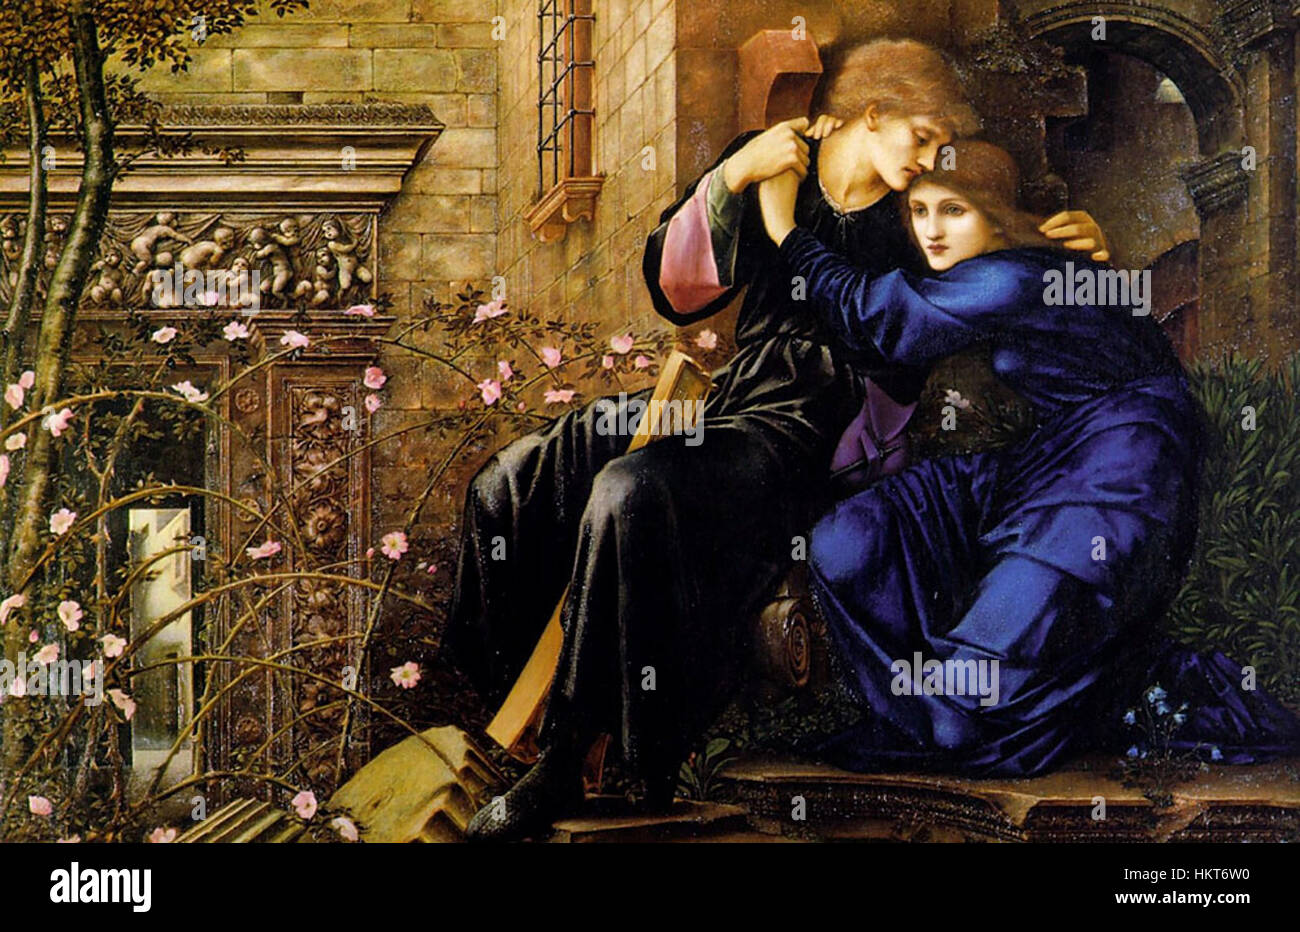 Edward Burne-Jones Love Among the Ruins - Stock Image